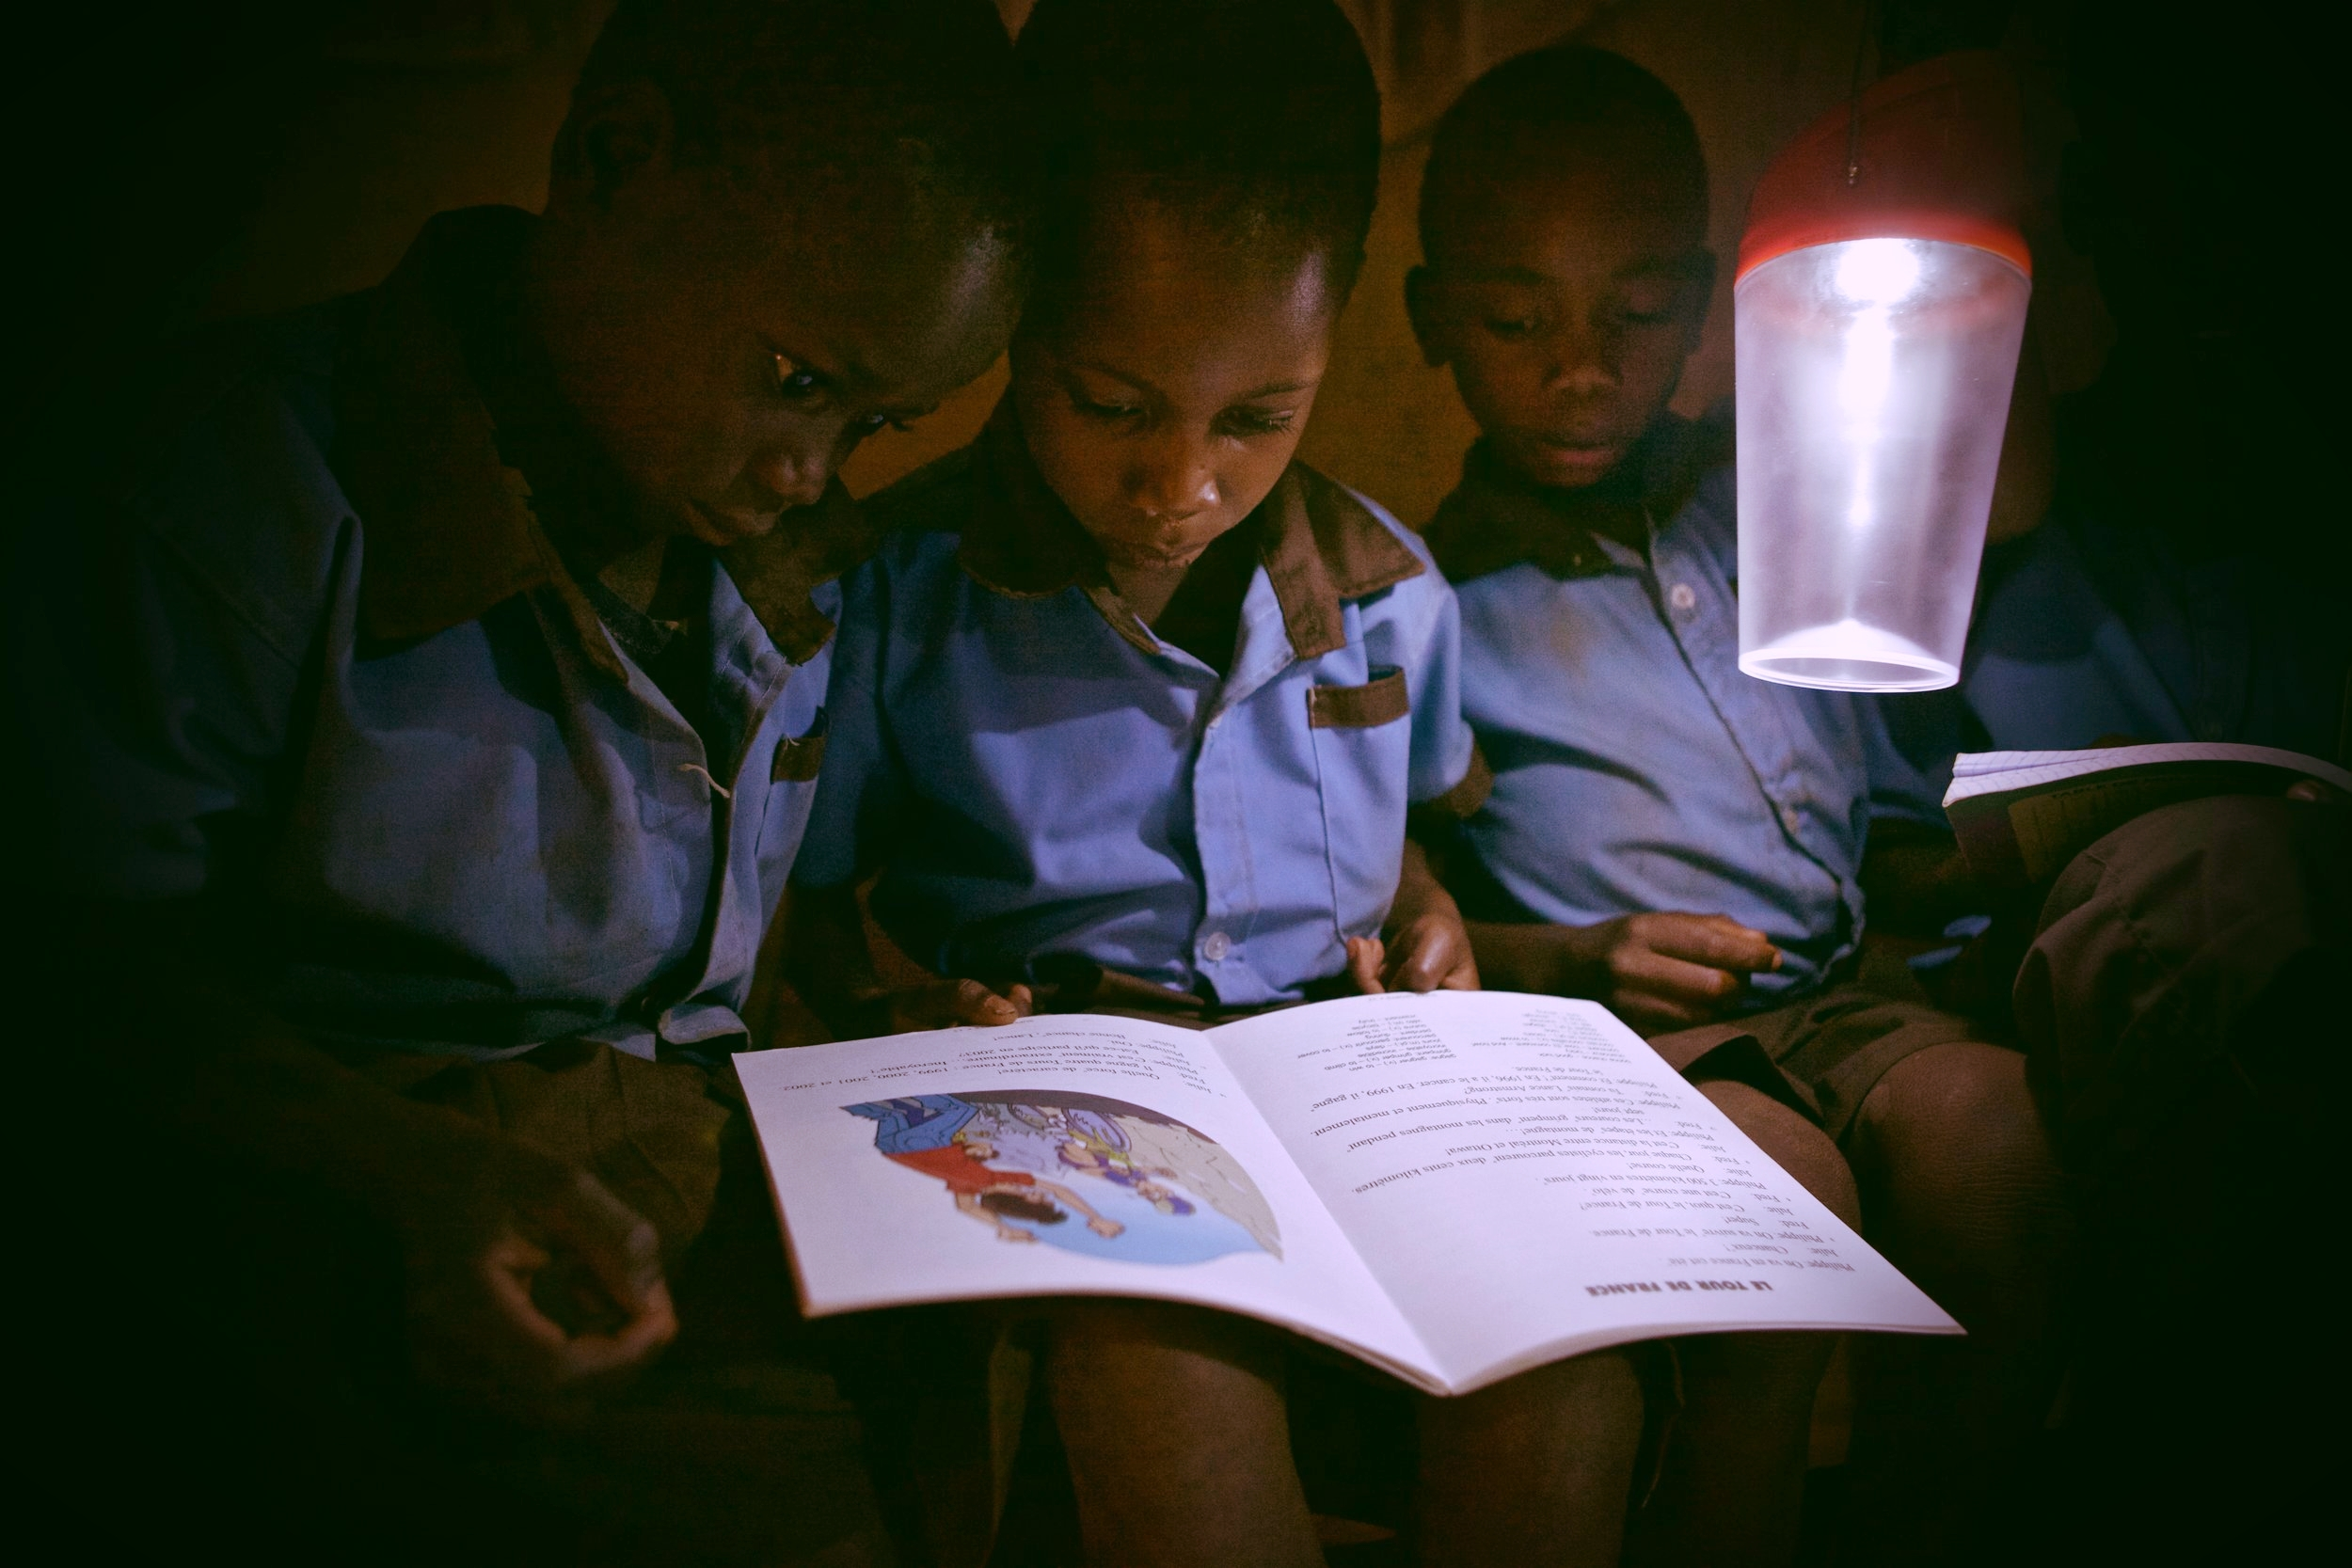 The solar lamps seen in this photo are the same lamps we'll be purchasing for every student.